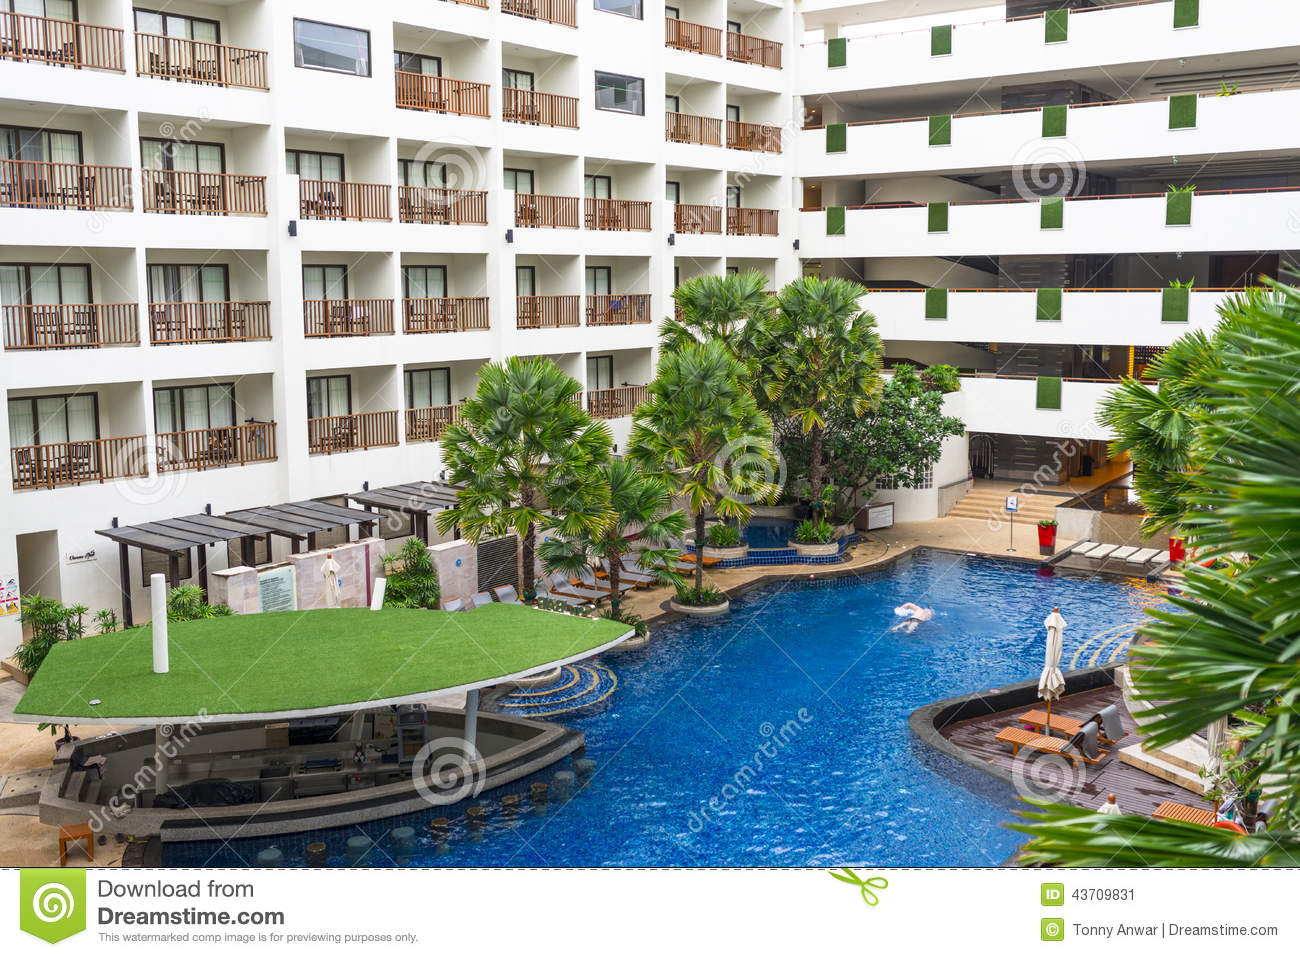 Hotel balconies stock image image of accommodation pool - Hotel with swimming pool on balcony ...